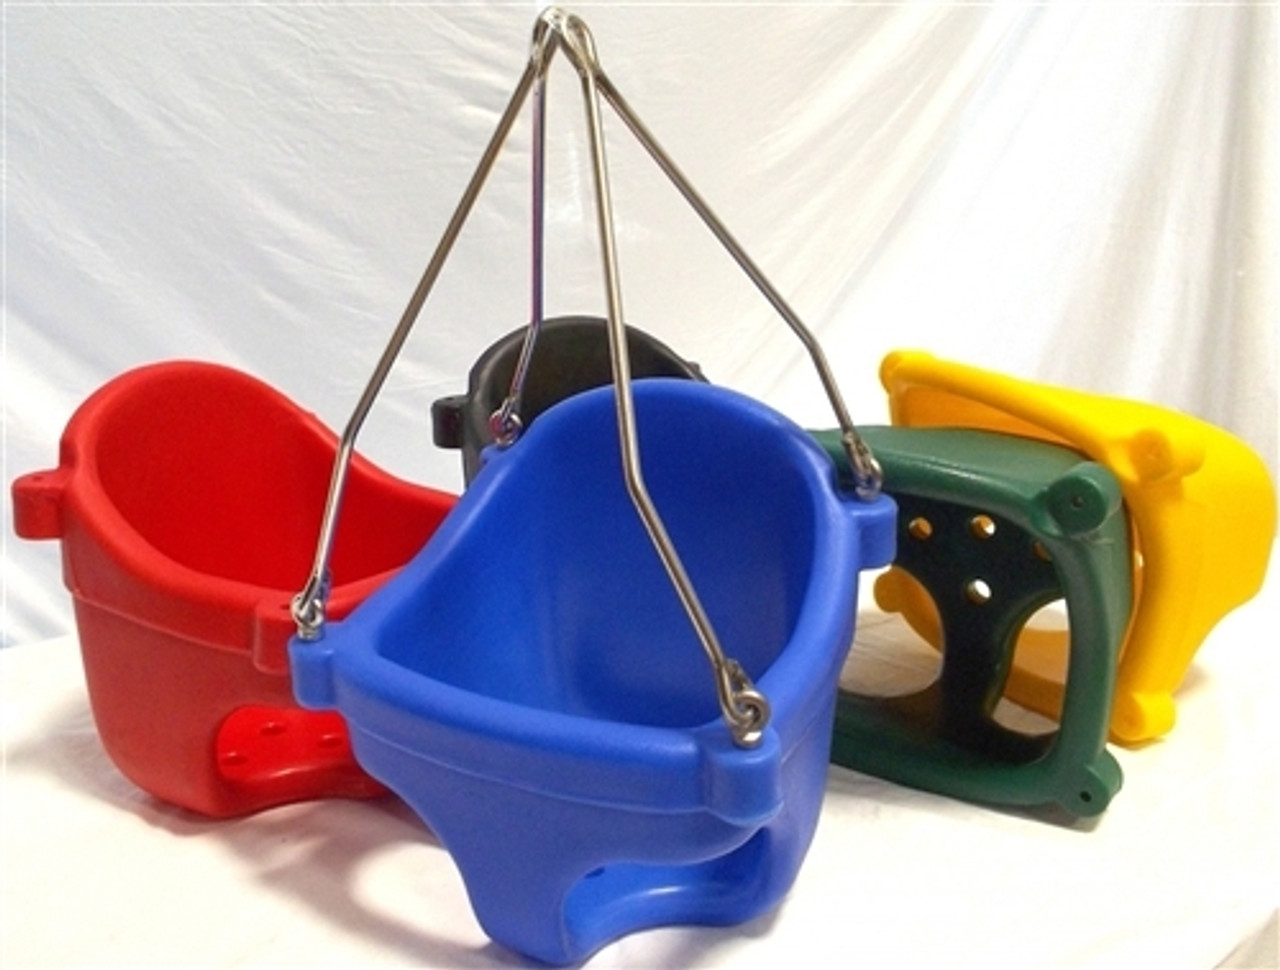 Roto-Molded Plastic Full Bucket Swing Seat